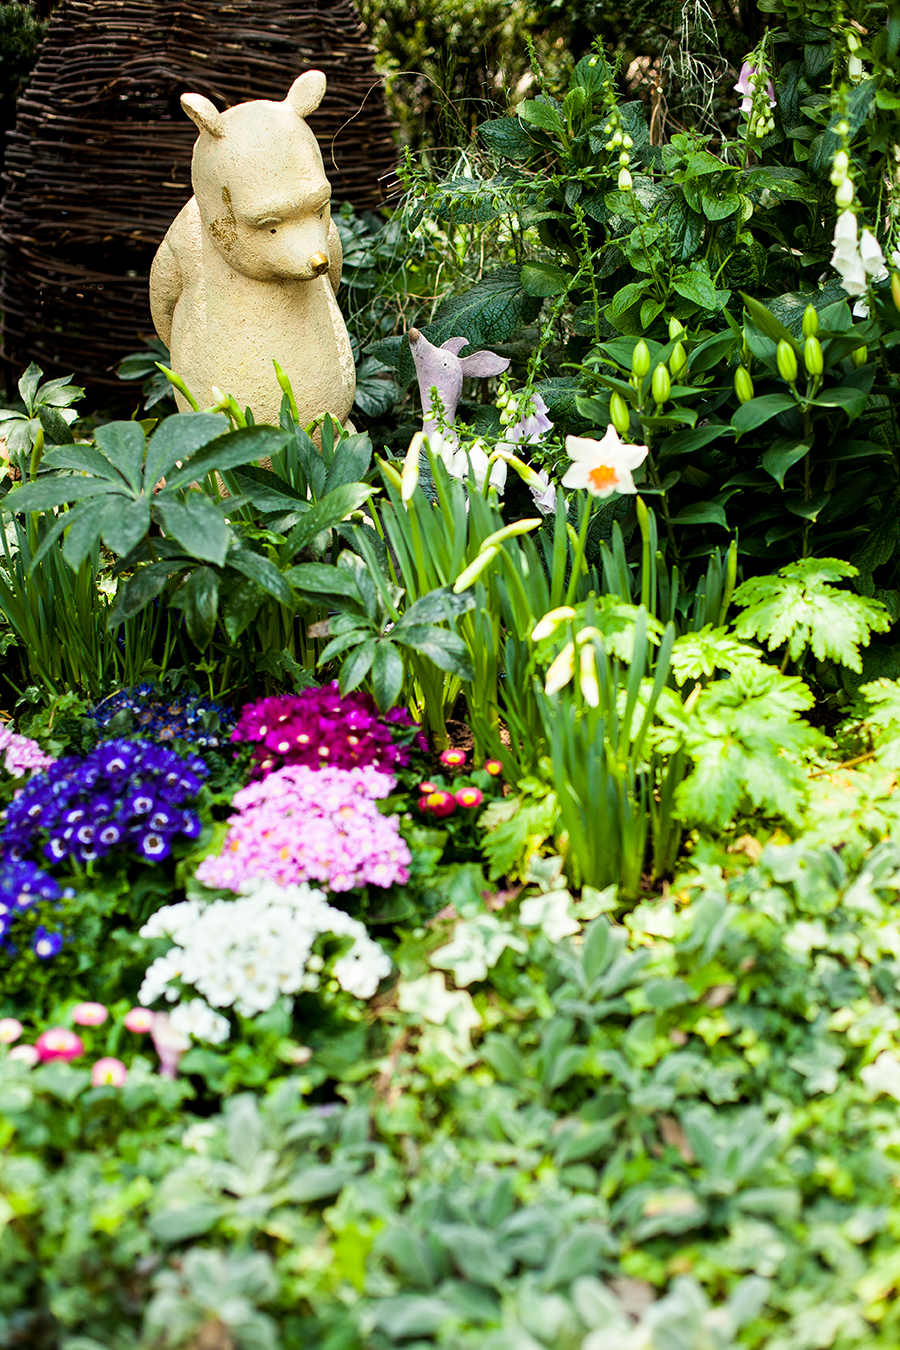 Winnie the Pooh and Piglet among flowers at the Flower Dome at Gardens by the Bay, Singapore.